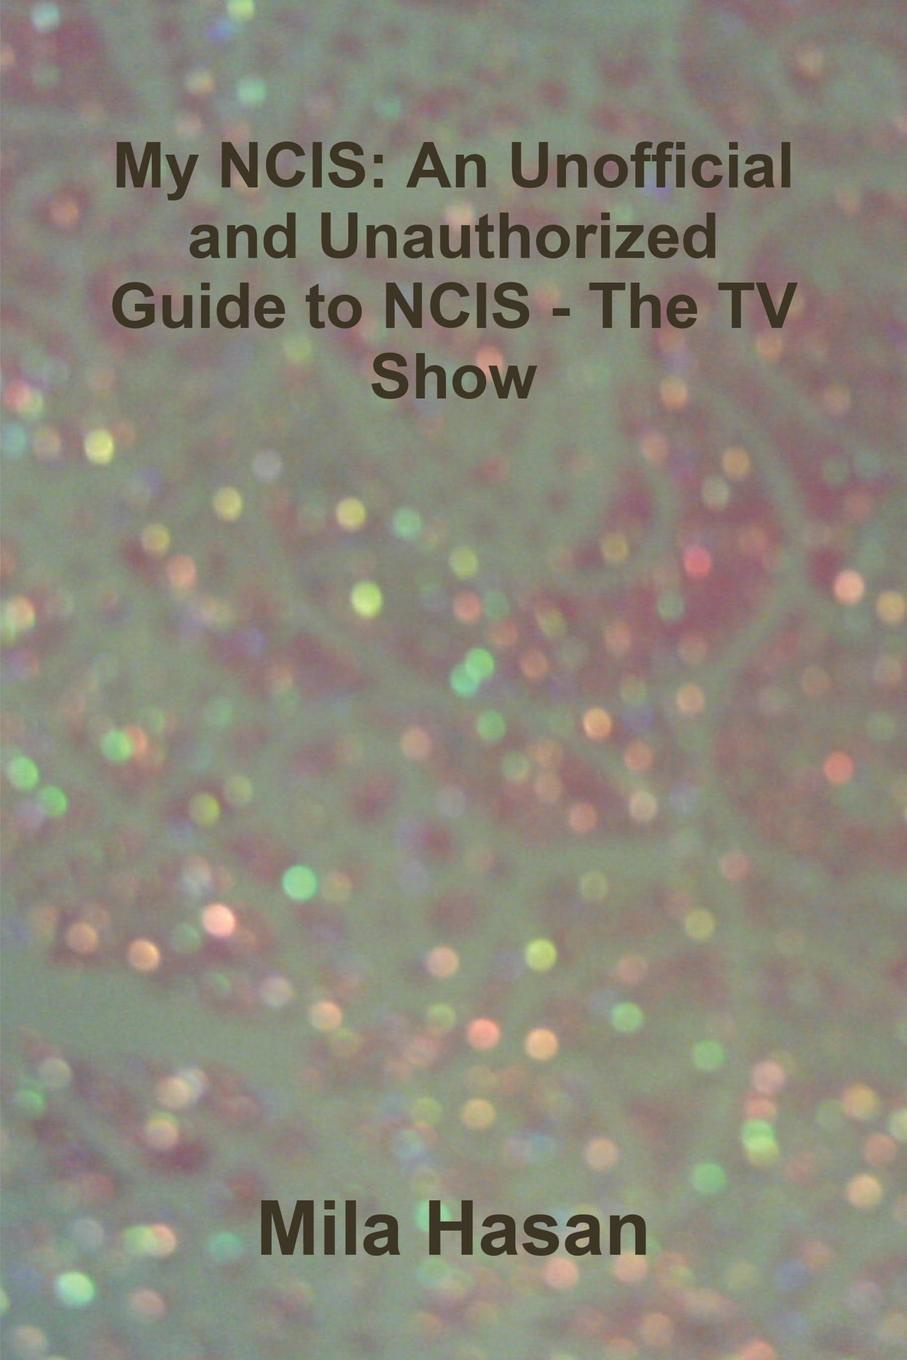 Mila Hasan My NCIS. An Unofficial and Unauthorized Guide to NCIS - The TV Show